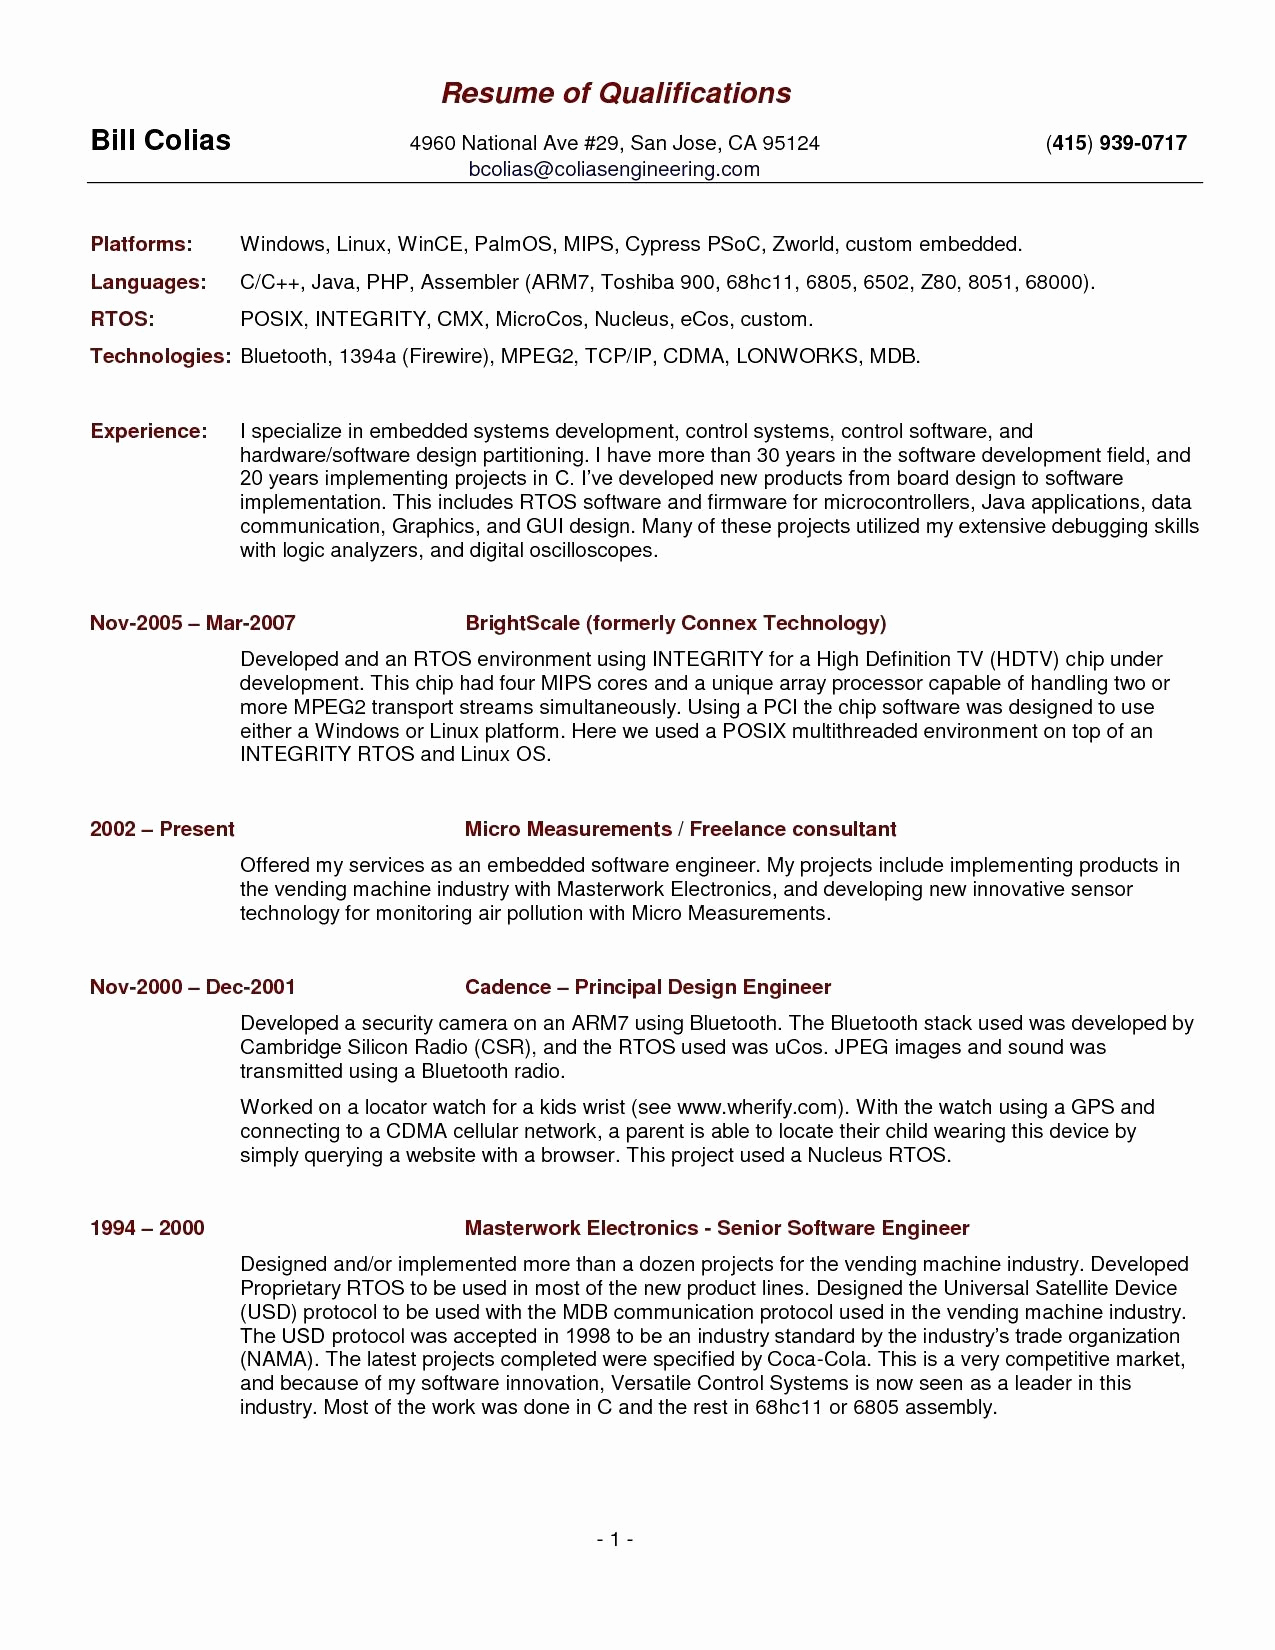 Dental Hygiene Resume Template - Resume Template for Electrician Resume Examples for Electrical